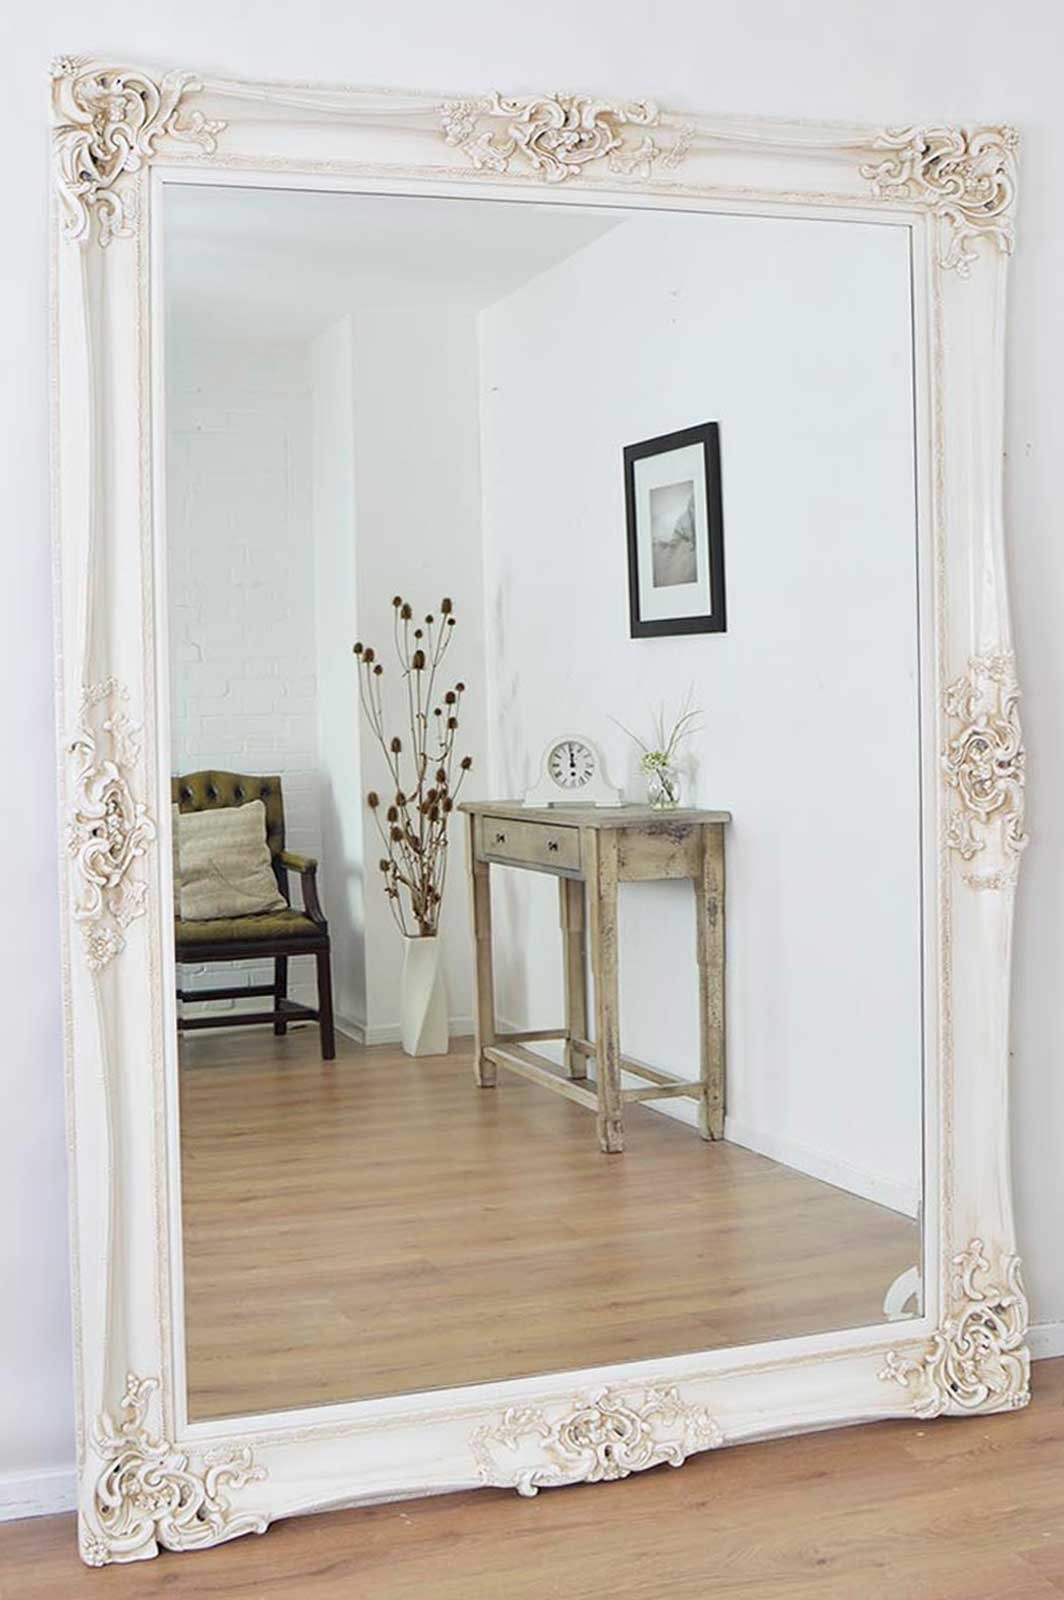 15 Very Large Ornate Mirrors Mirror Ideas